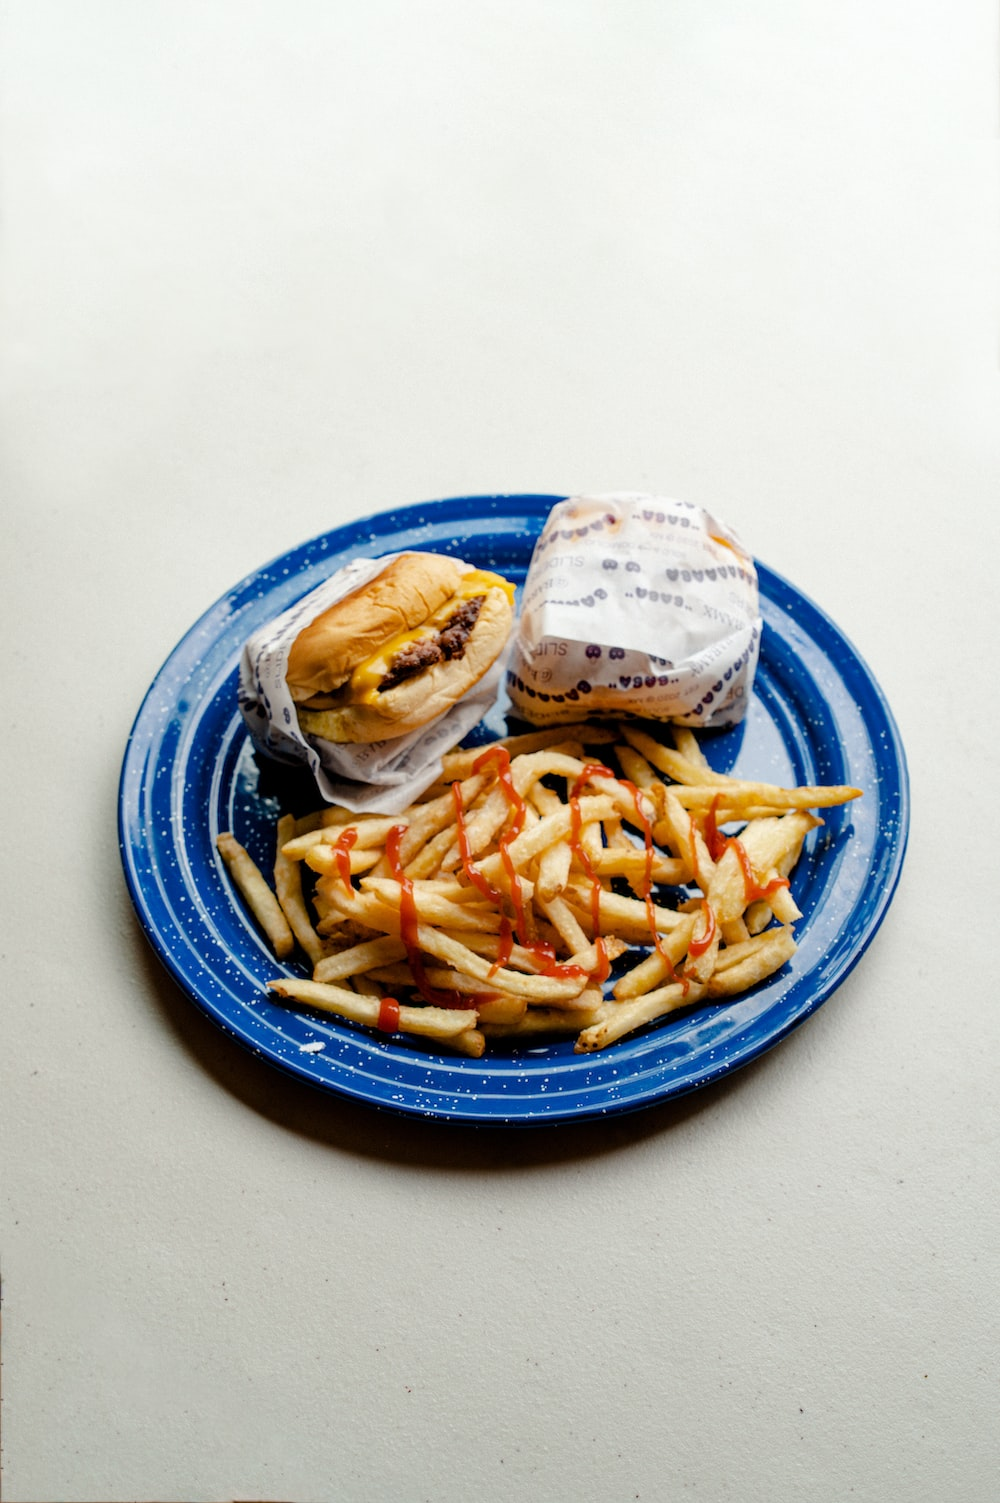 burger and fries on blue and white ceramic plate